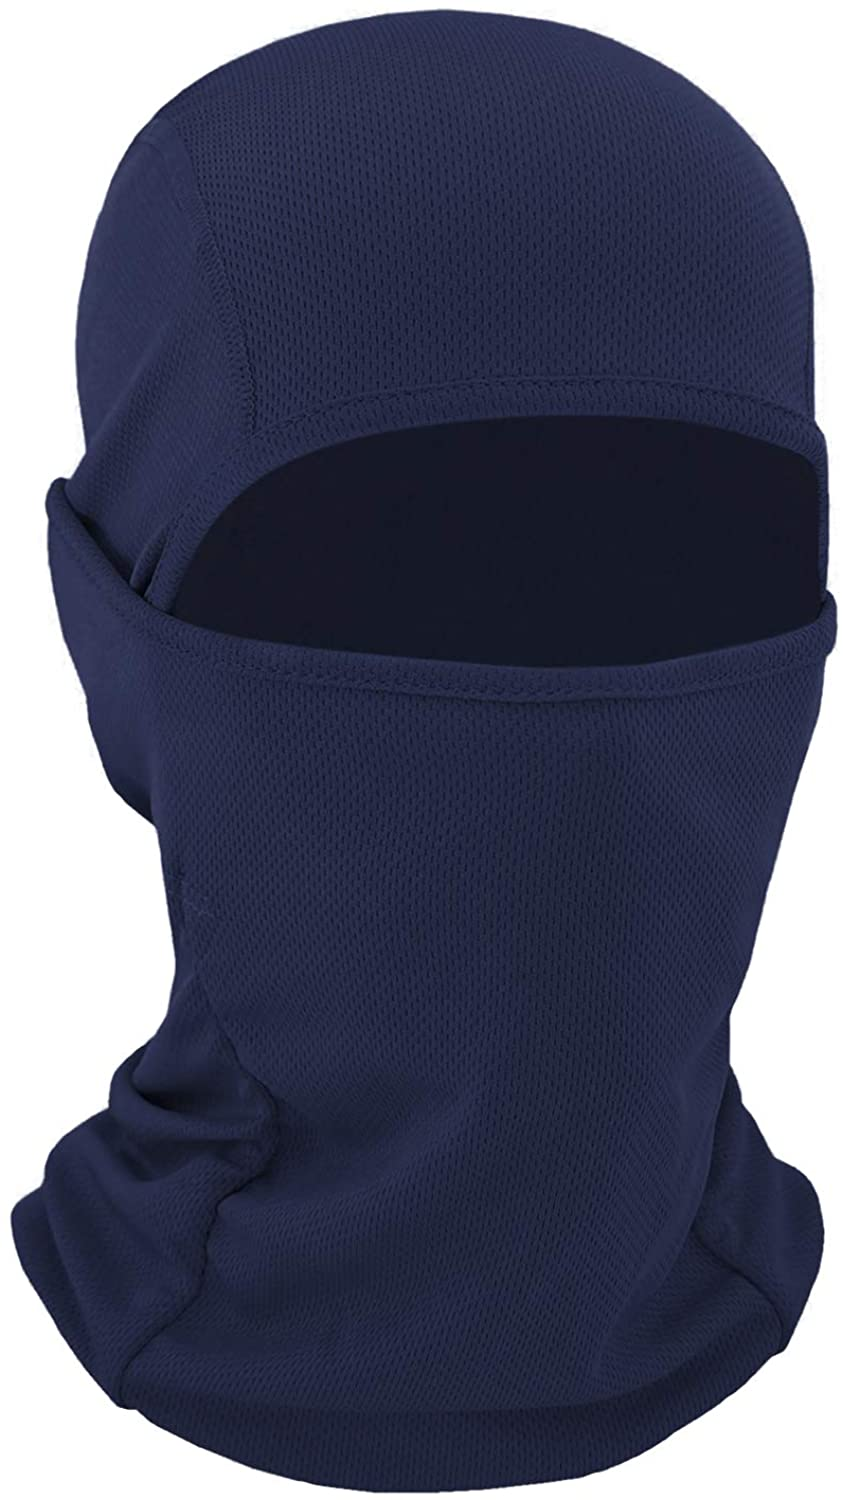 Plazenzon Balaclava Face Mask Men Women, Summer Hot Weather Balaclava Scarf Protection from UV, Dust Cycling Motorcycle Mask